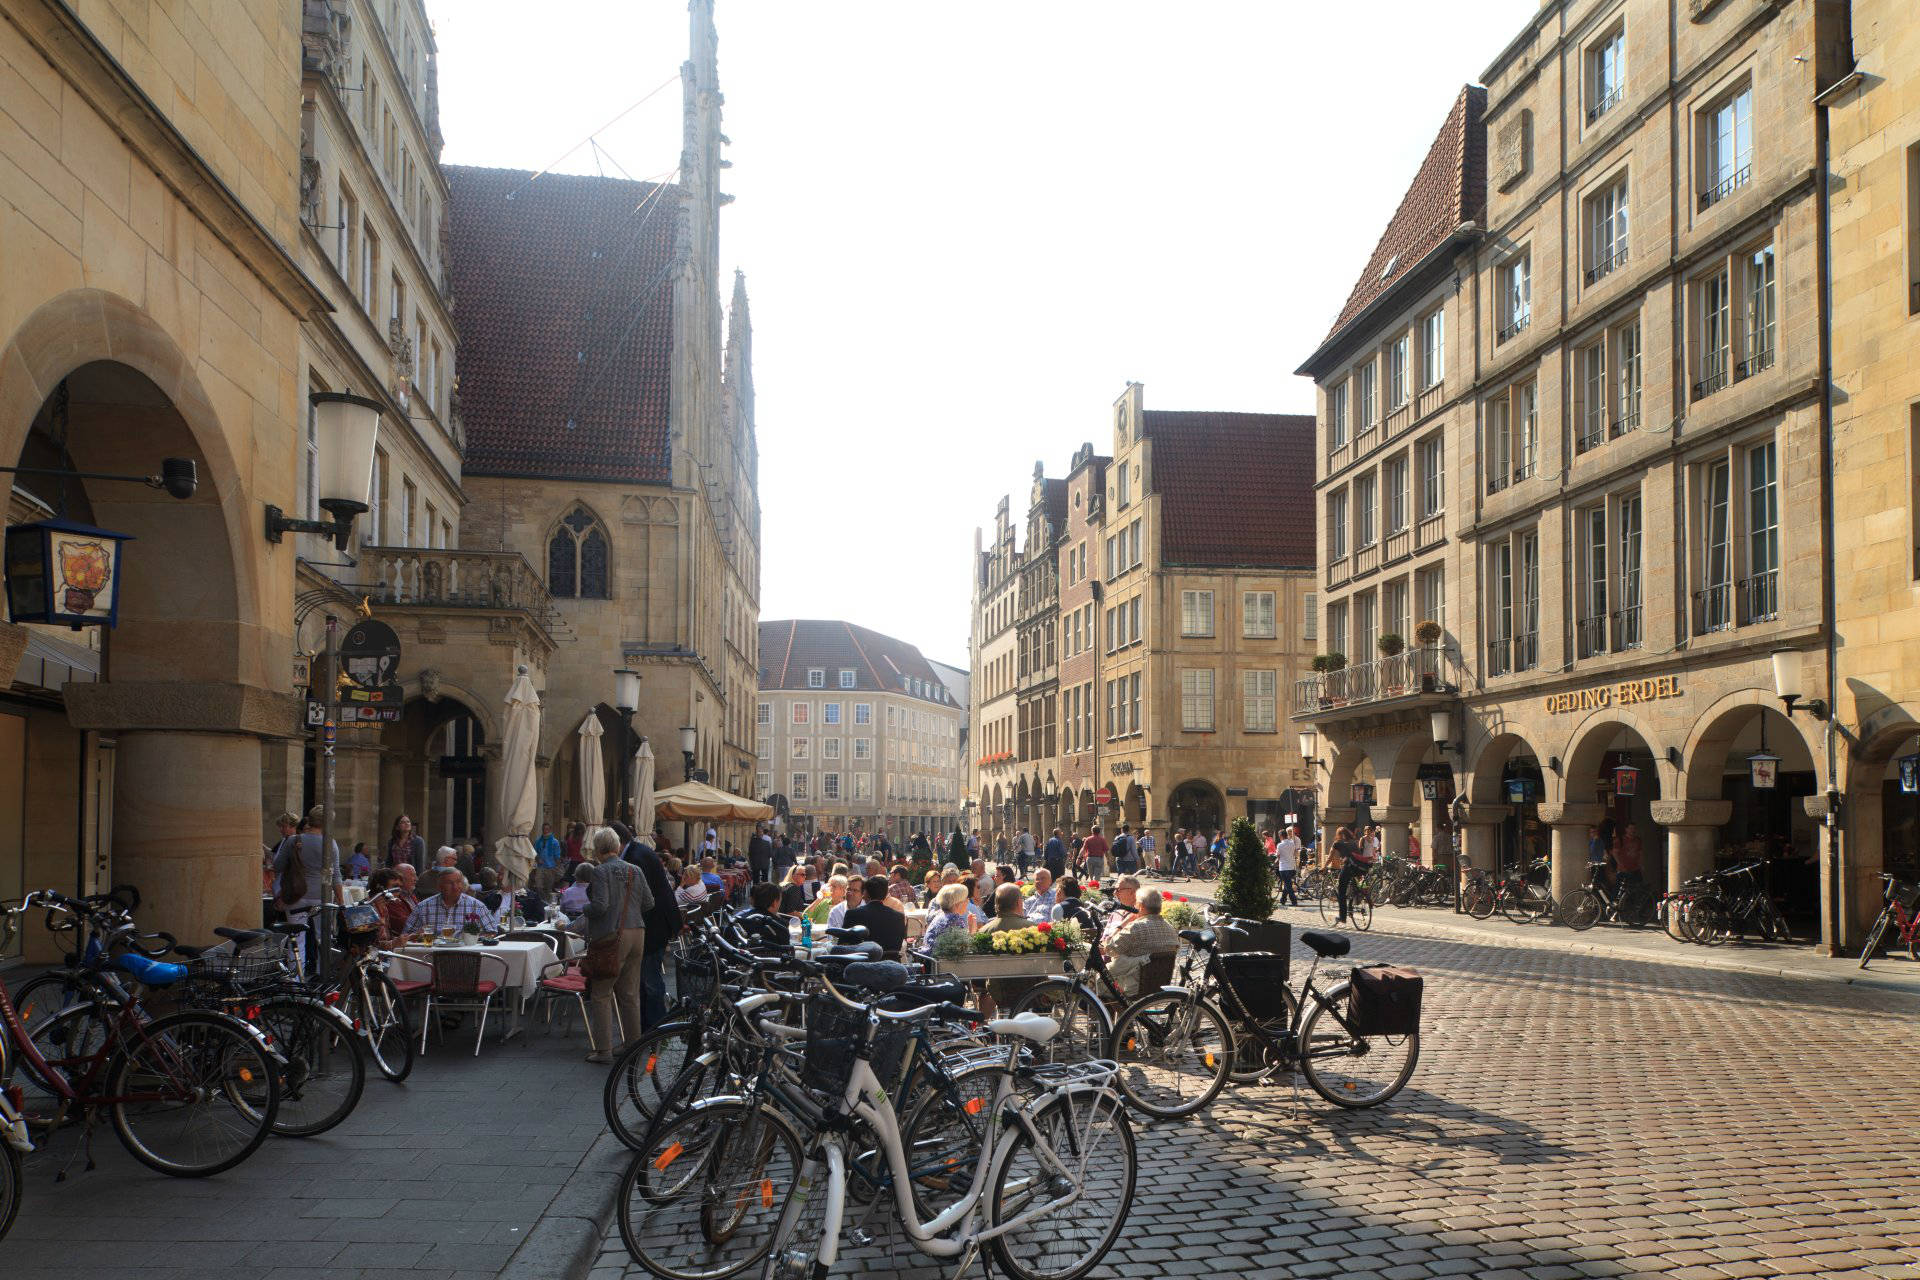 Who Invented The First Car >> Kassel or Münster? We Help You Decide which Event to Attend